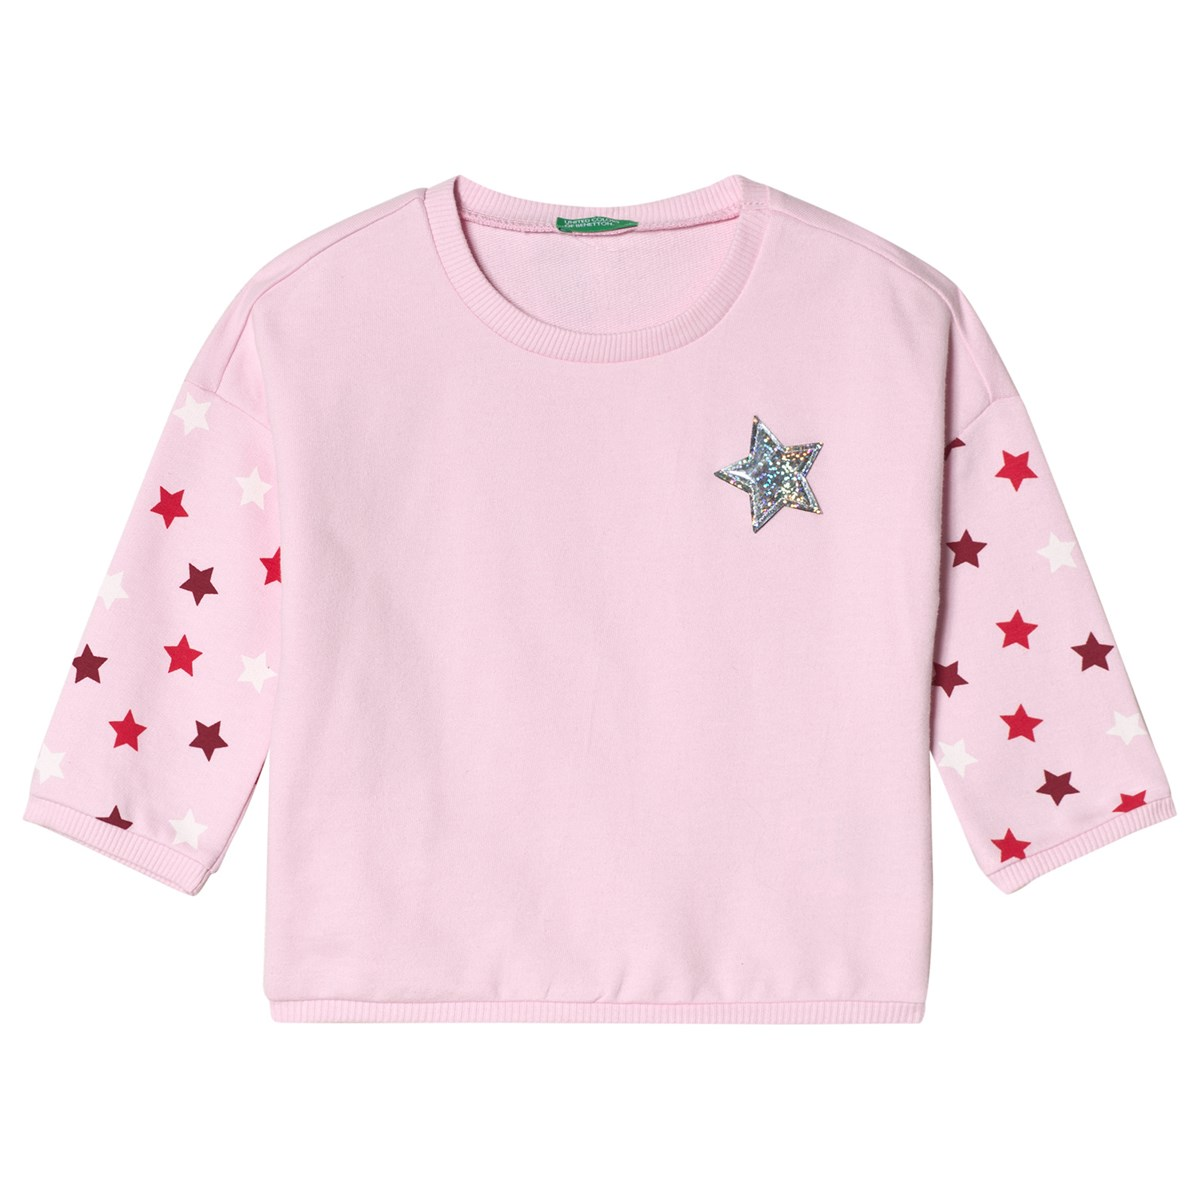 united colors of benetton star print sweater candy pink. BABYSHOP d156cca03759a